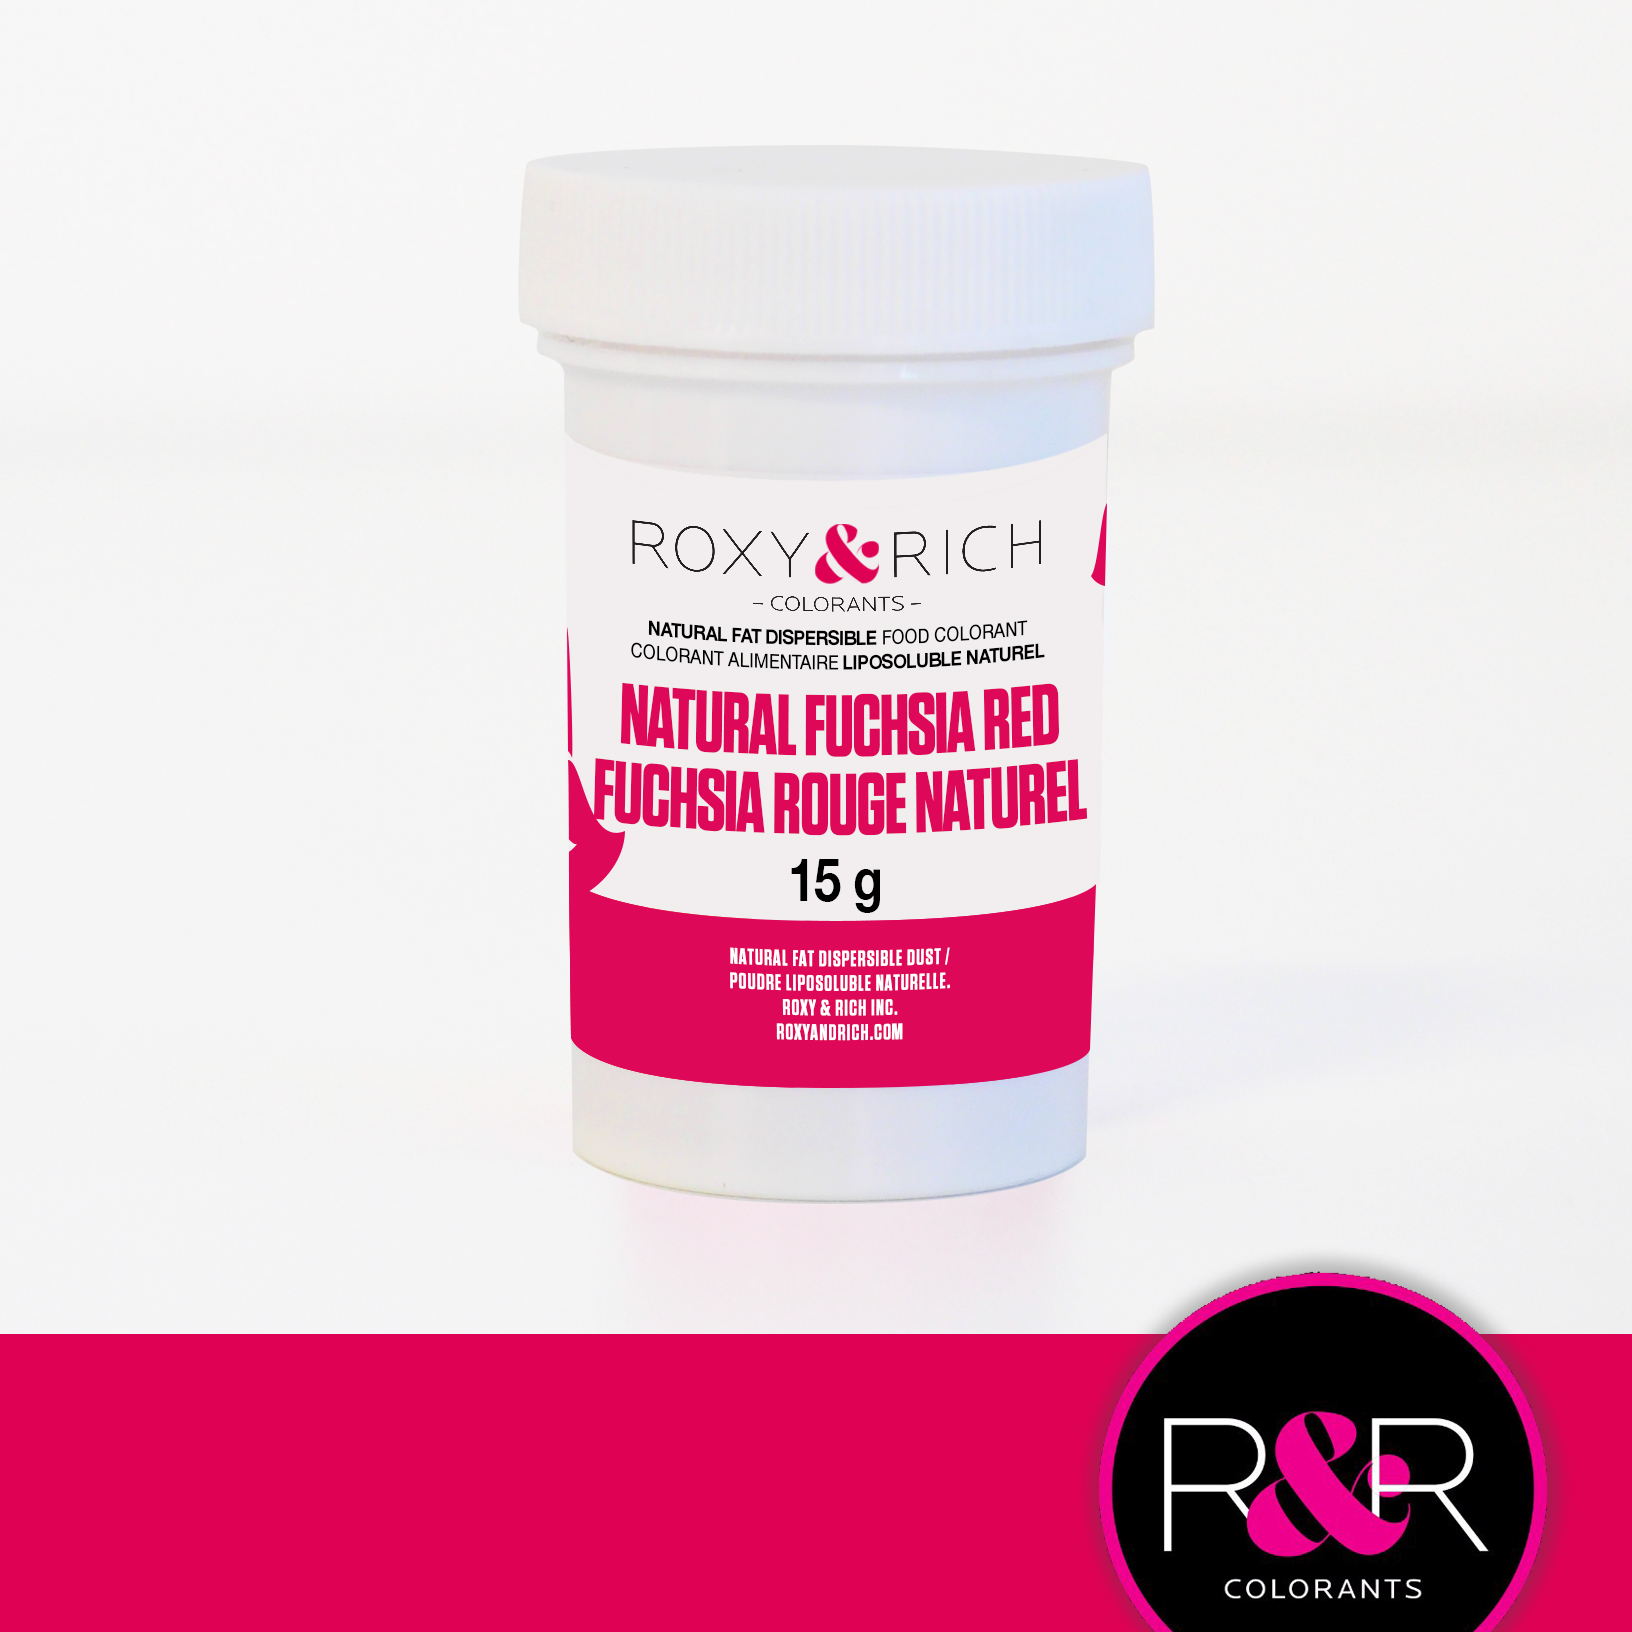 FUCHSIA RED Fat Dispersible Natural Food Colouring 15g - ROXY & RICH ** Best Before Date: January 2019**